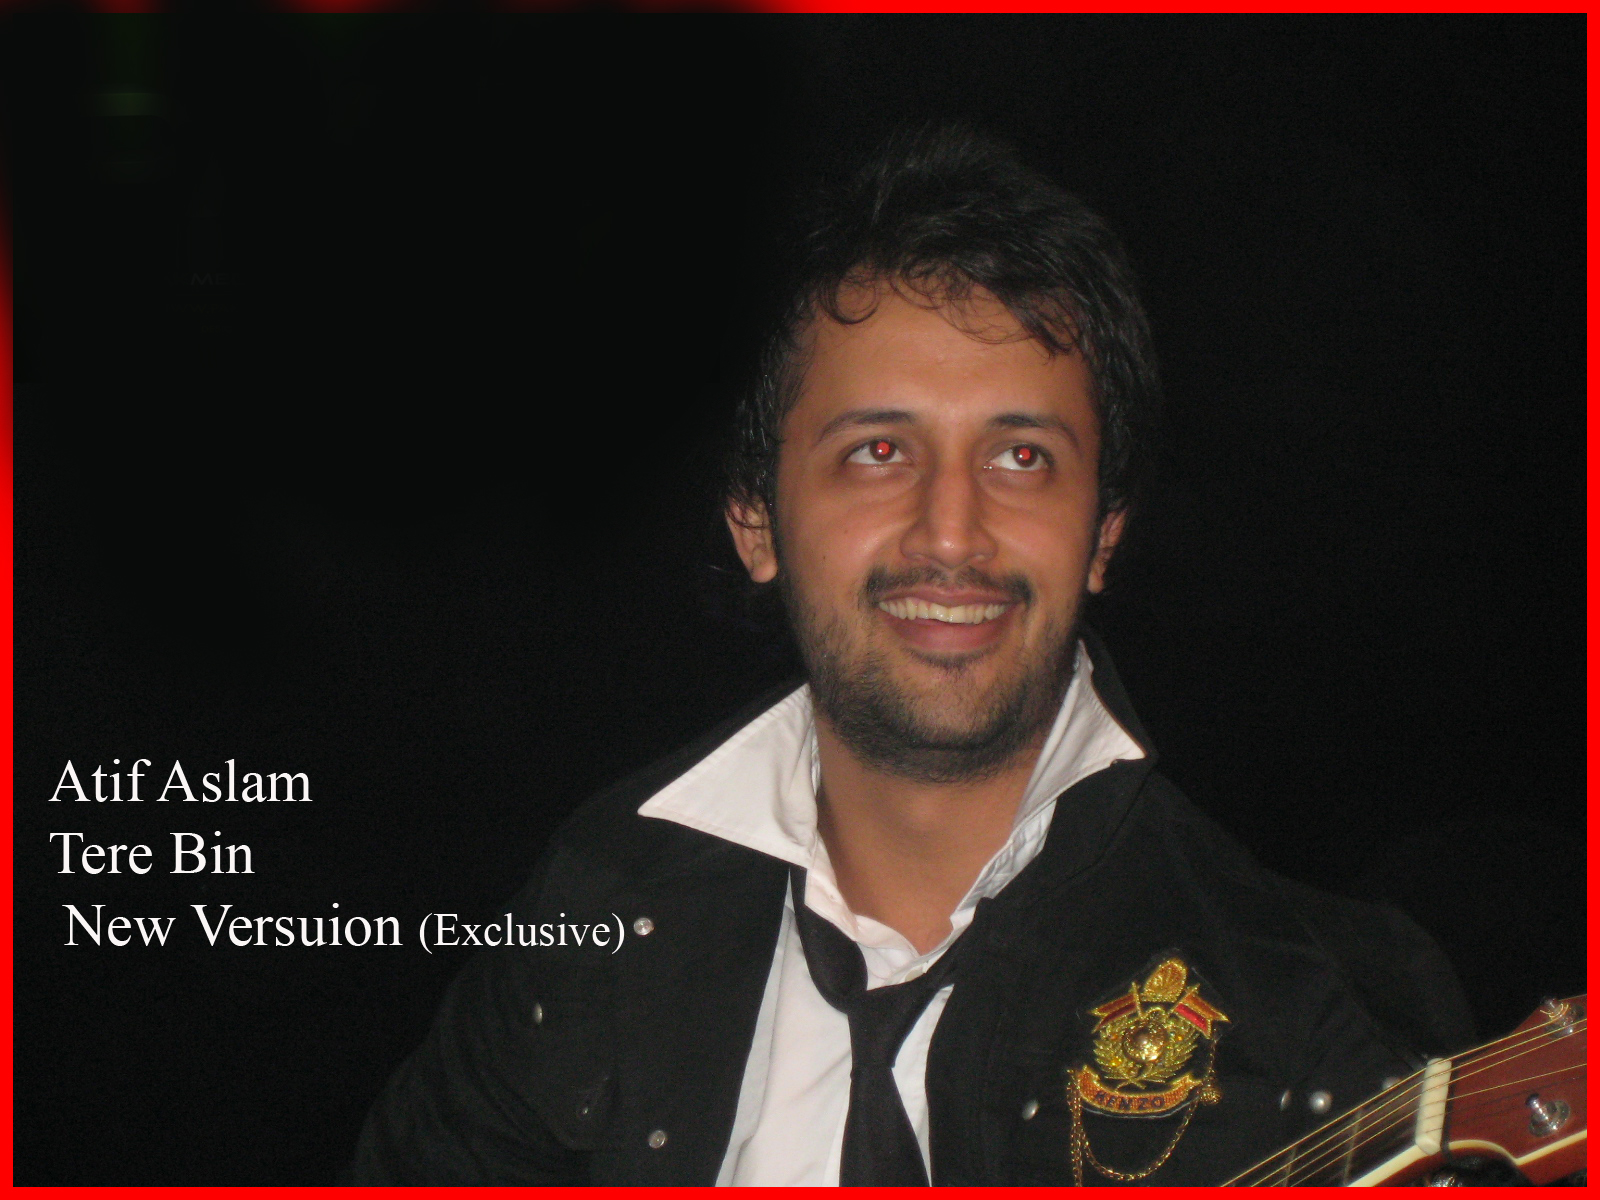 Tere Bin (Bas Ek Pal) - Atif Aslam Bas Ek Pal mp3 songs download